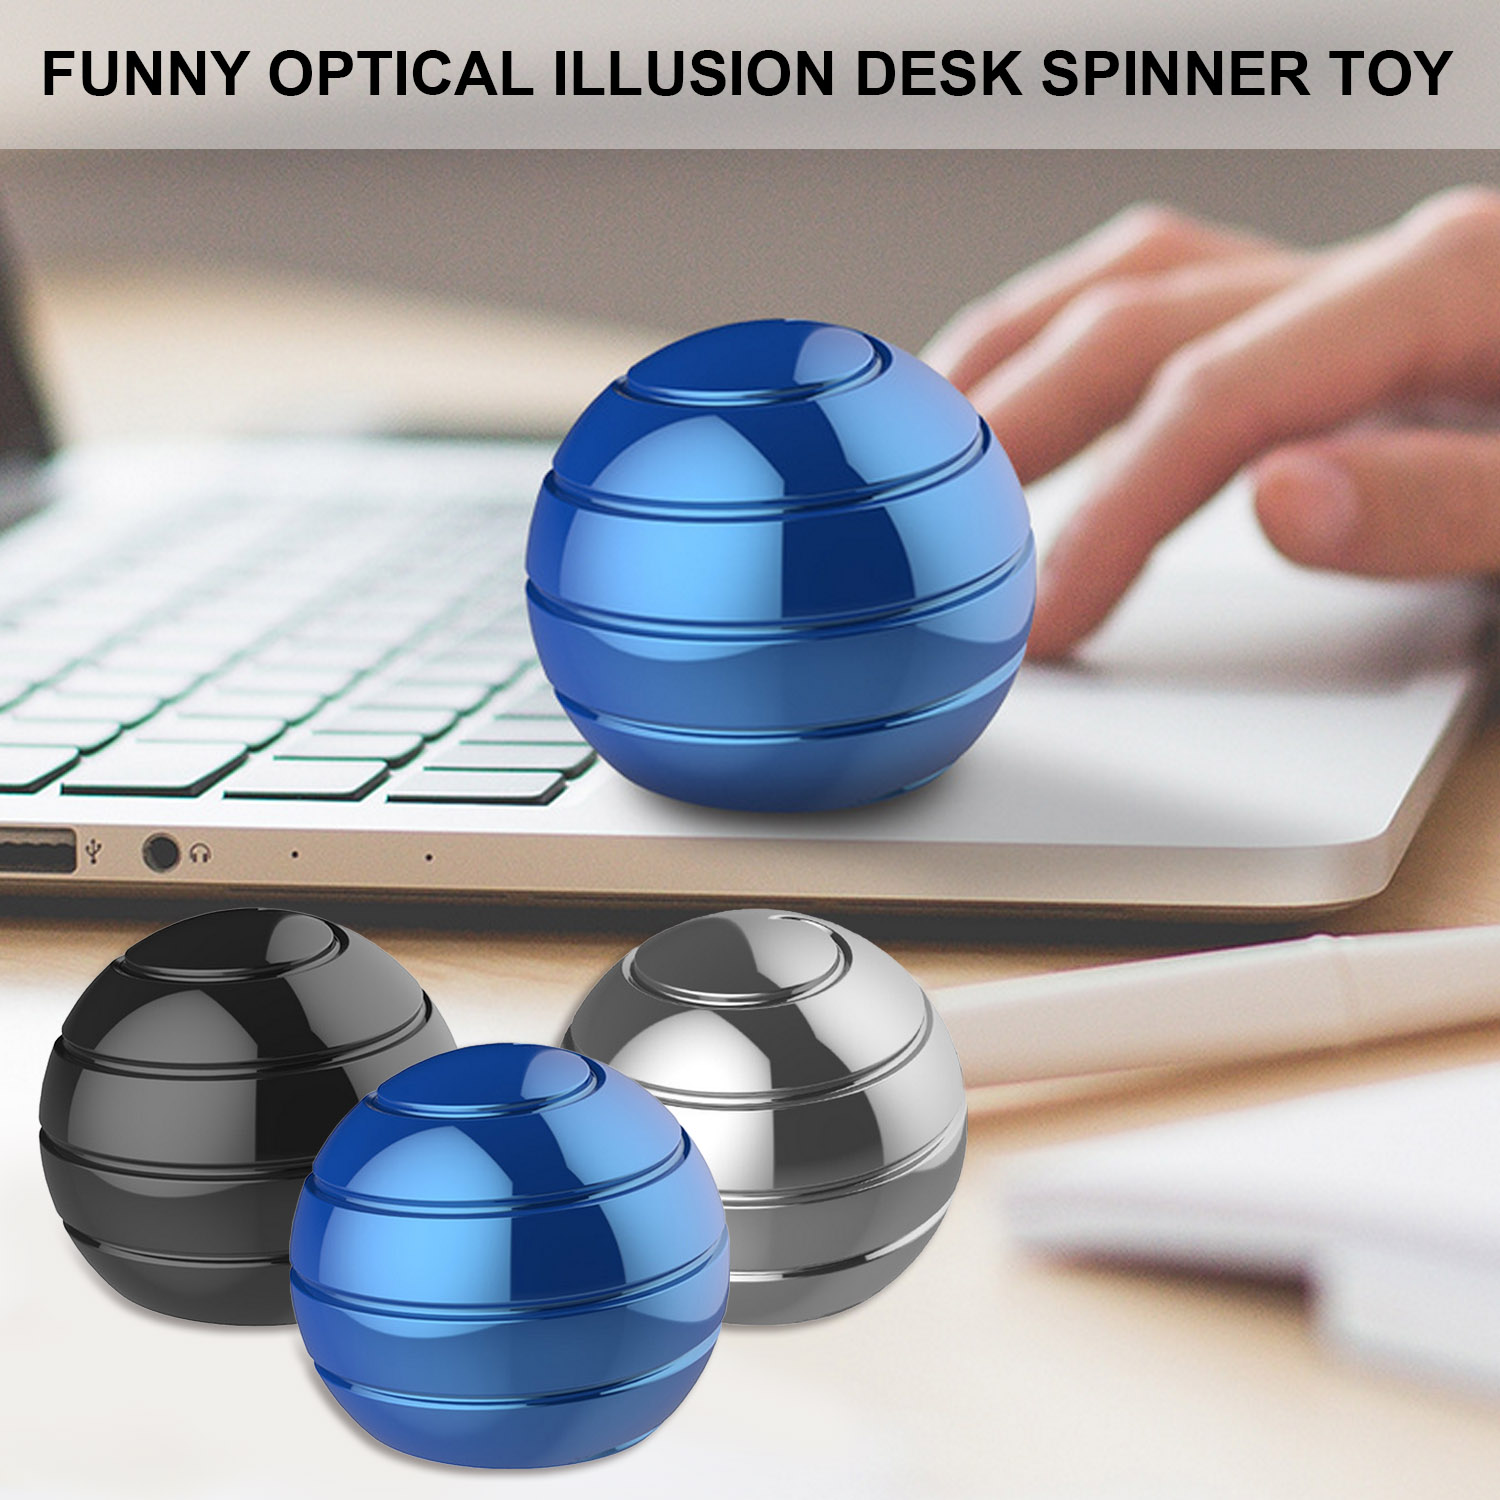 Funny Desk Spinner Gyroscope Top Ball Toy With Optical Illusion For Kids Adults Stress Anxiety Relief 55mm Diameter